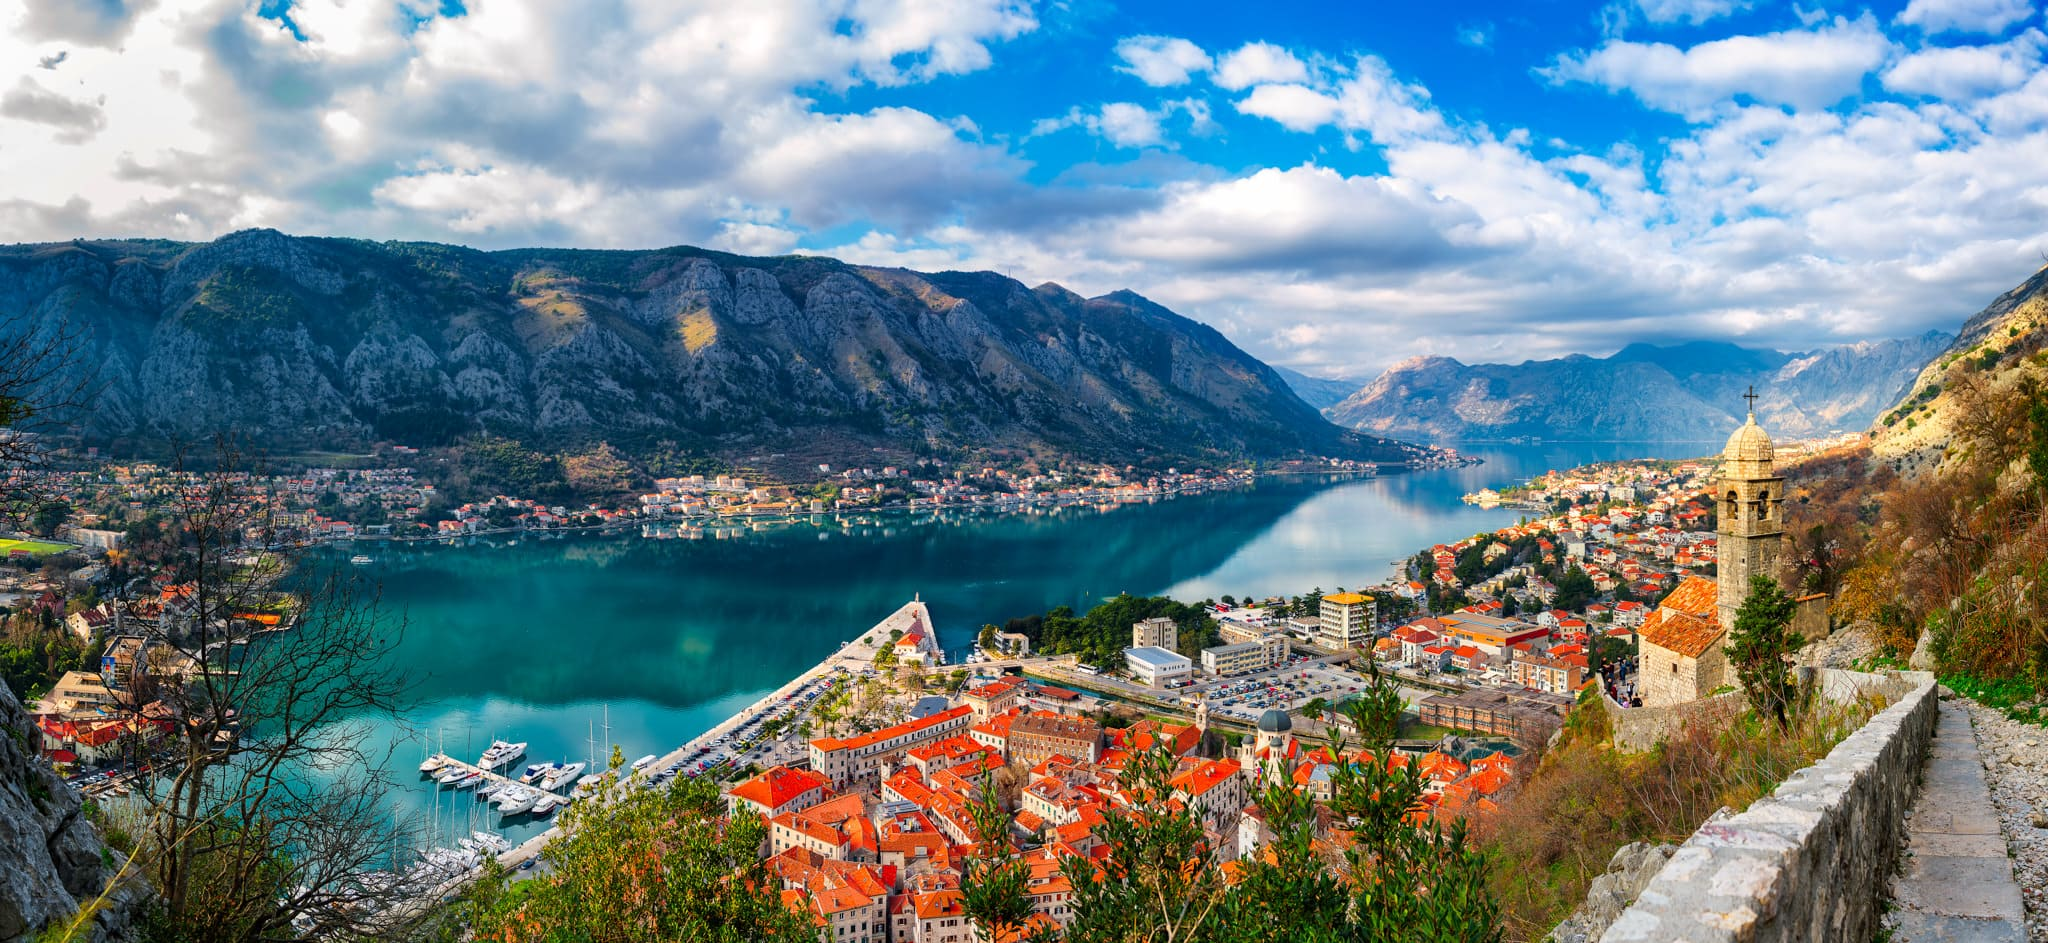 Daylight panoramic photo of Kotor, Montenegro.